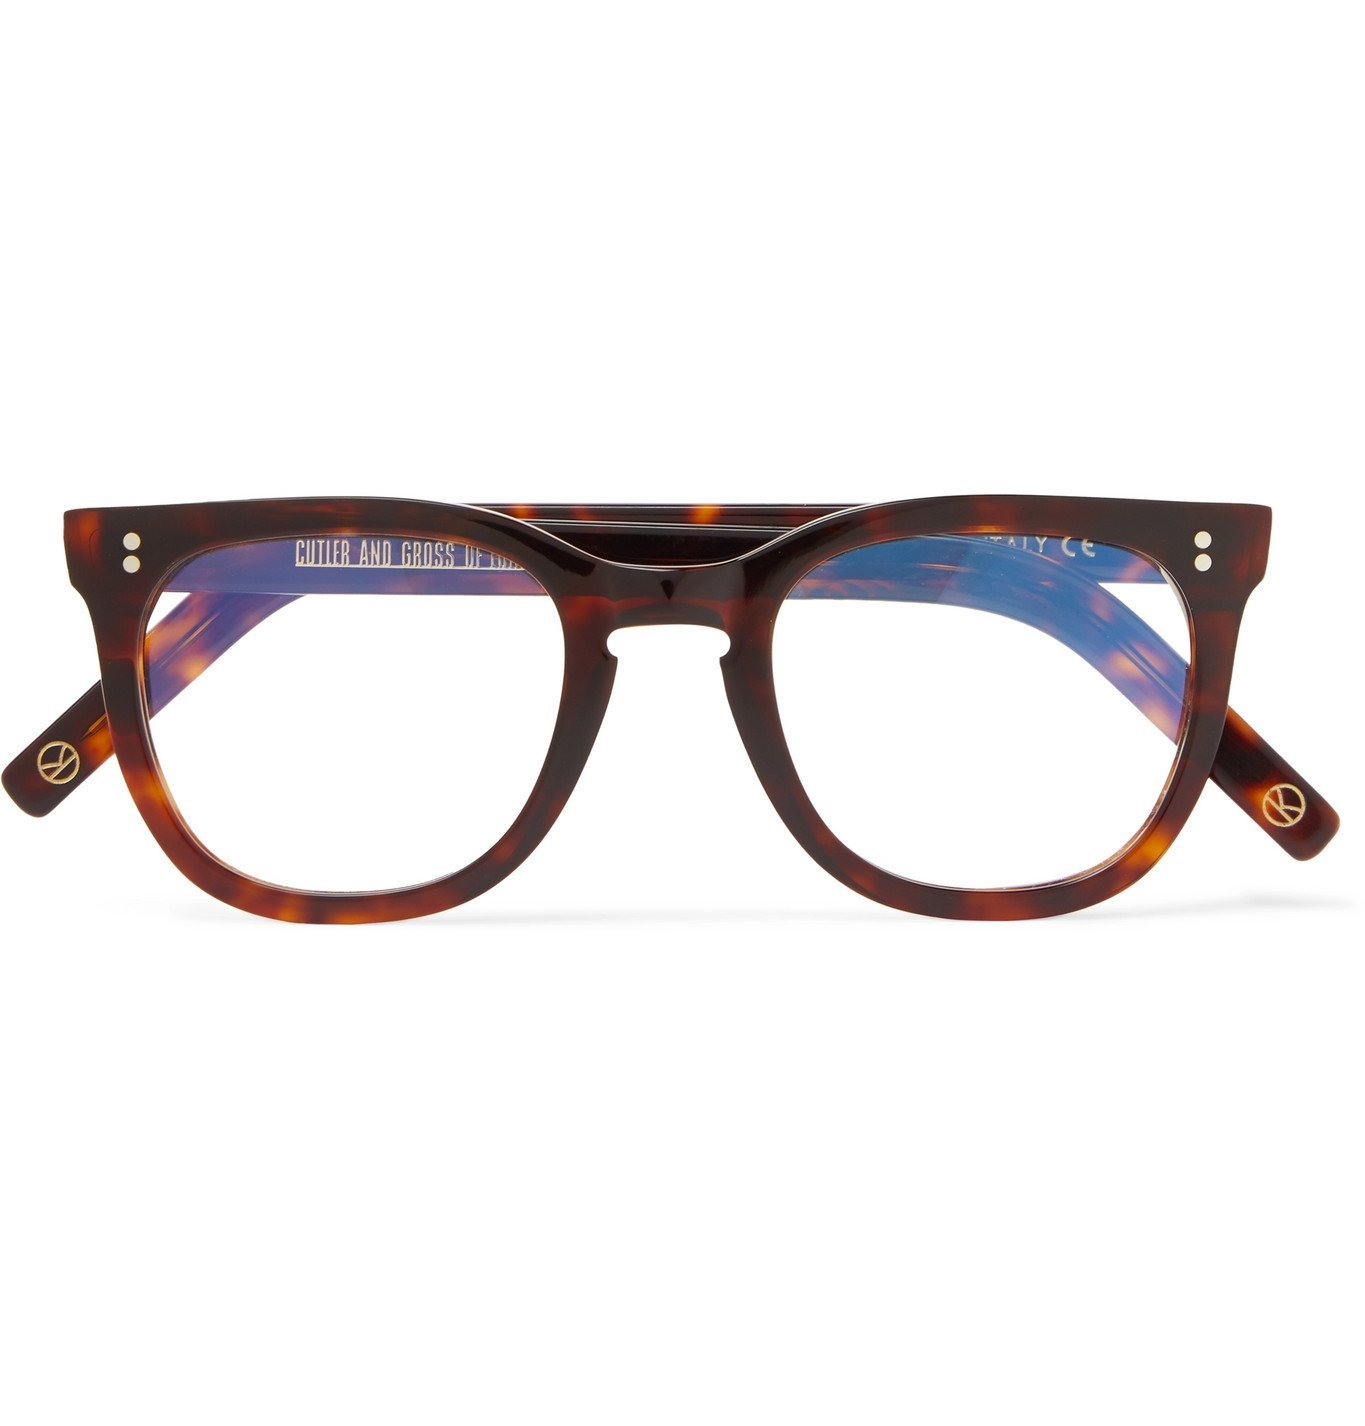 Photo: Kingsman - Cutler and Gross Square-Frame Tortoiseshell Acetate Optical Glasses - Tortoiseshell